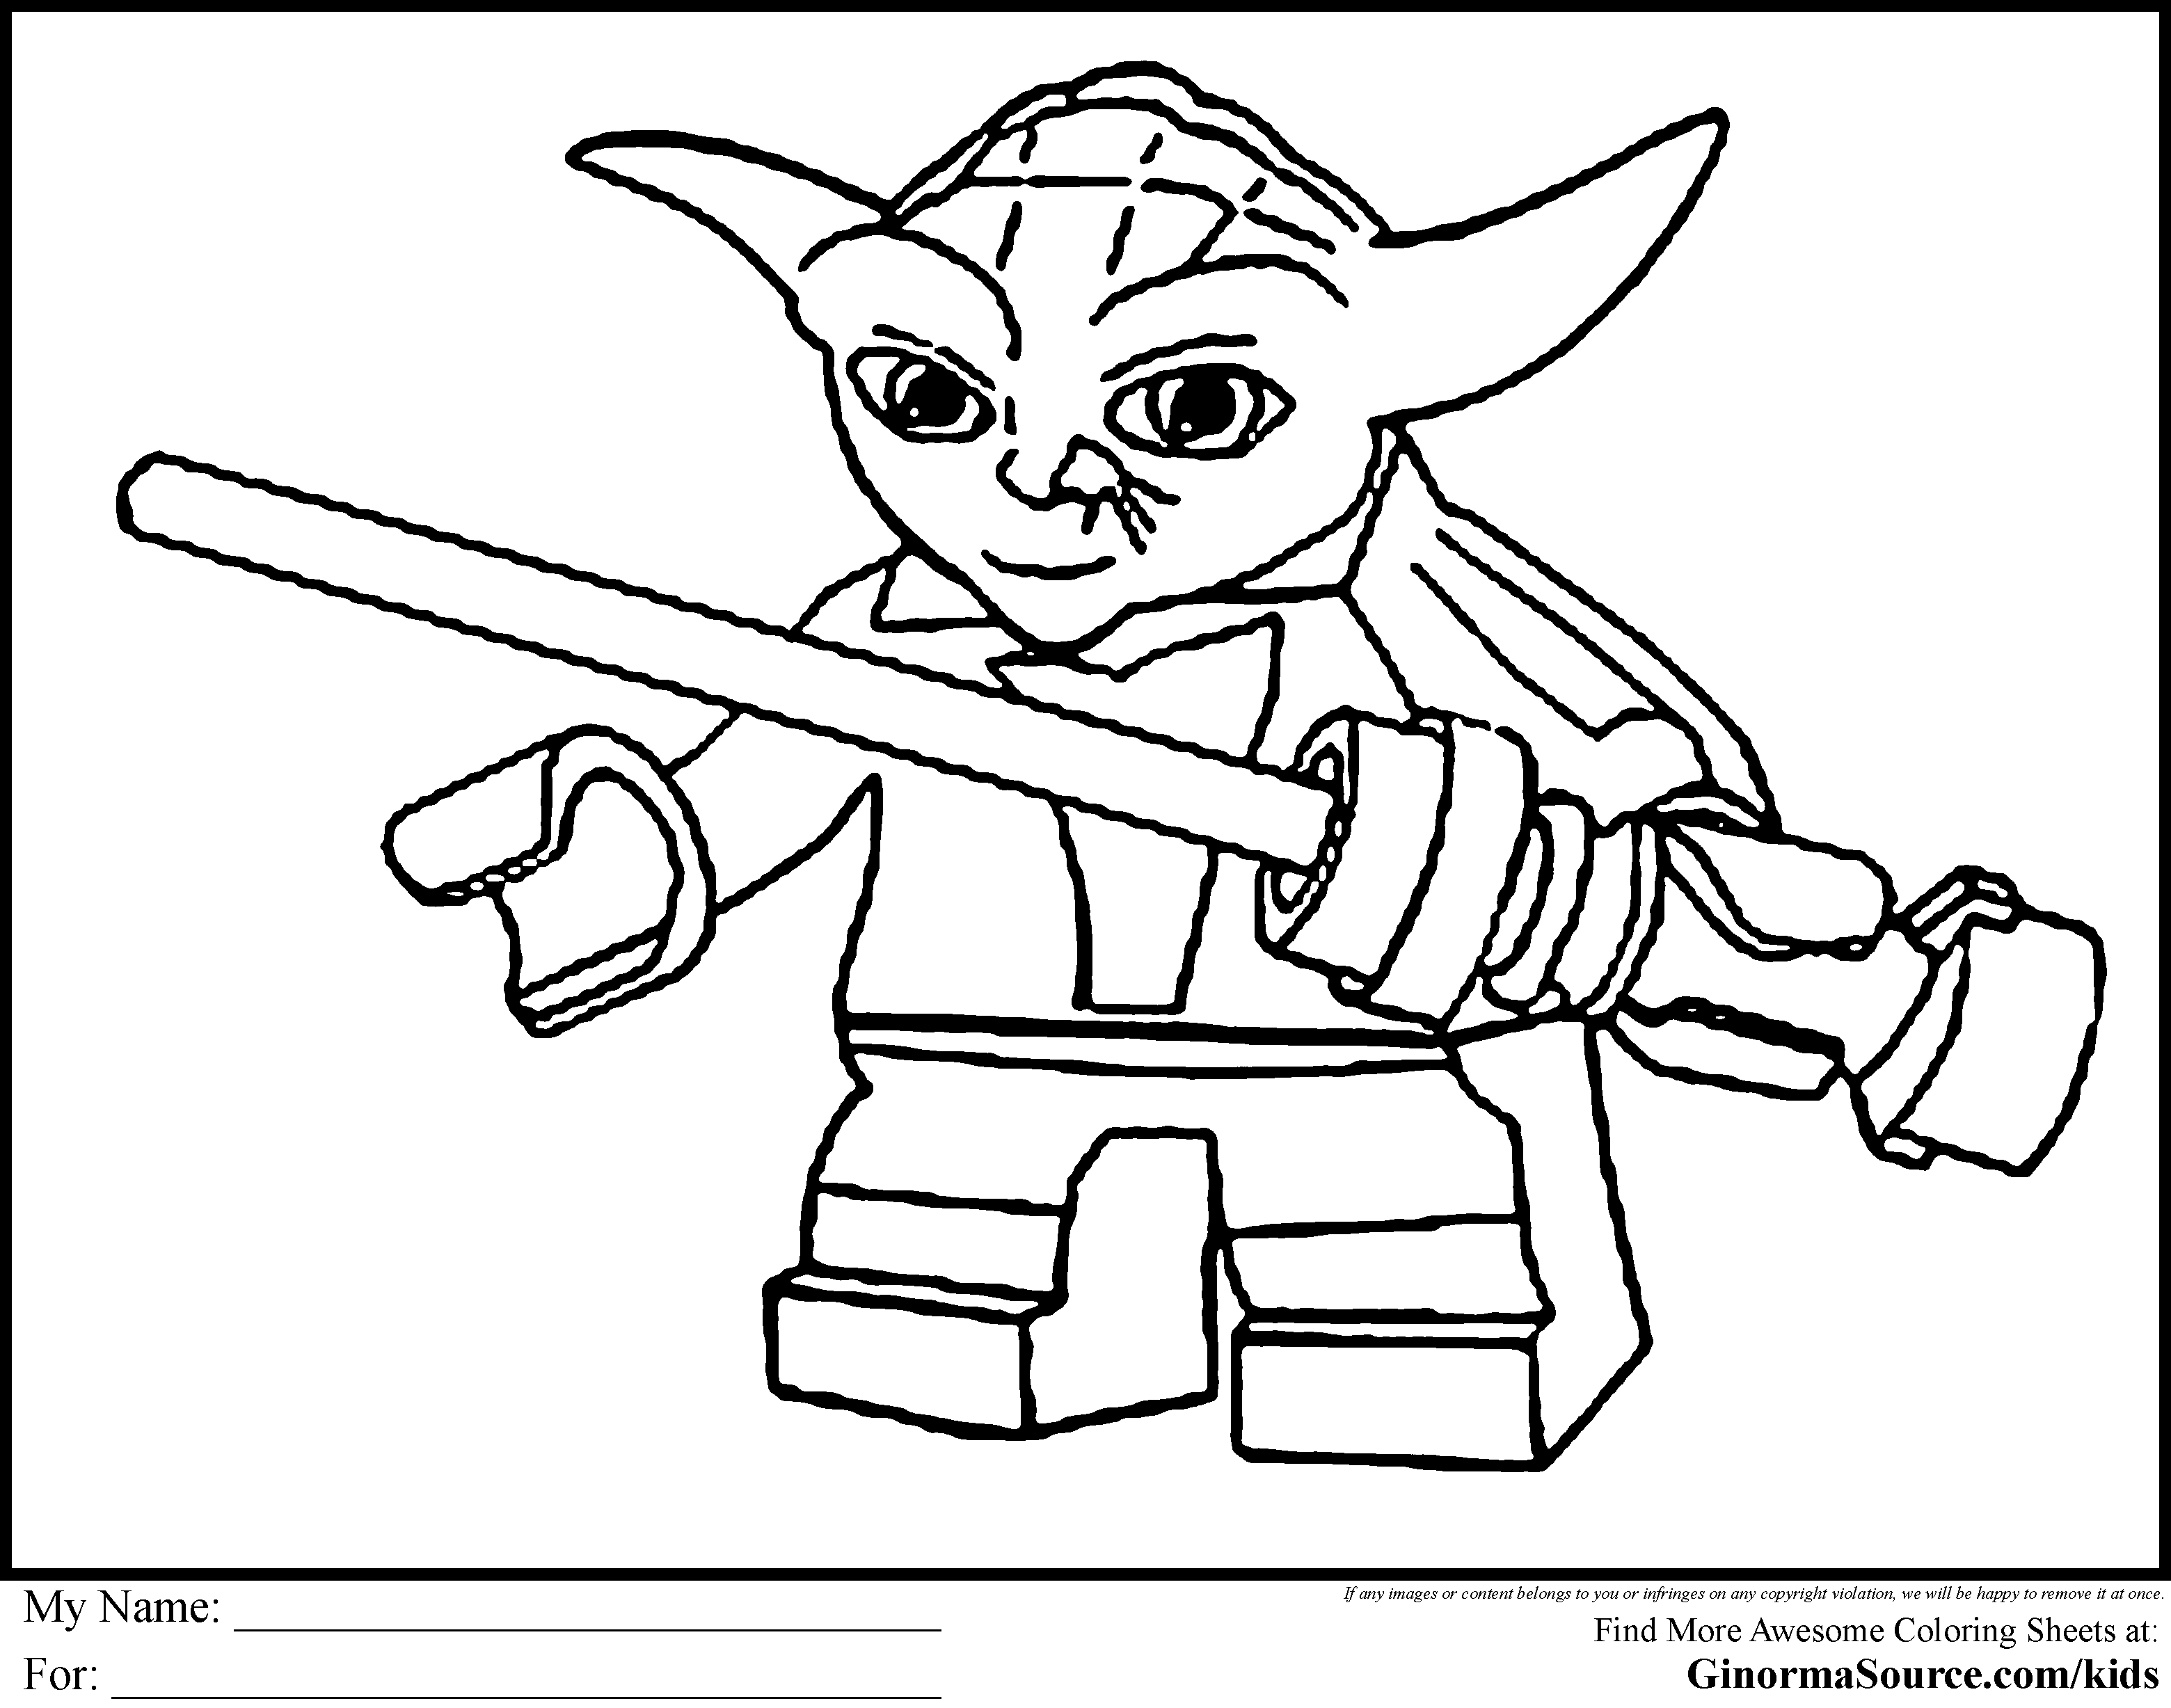 lego star wars pictures to print lego star wars coloring pages to download and print for free wars star to print pictures lego